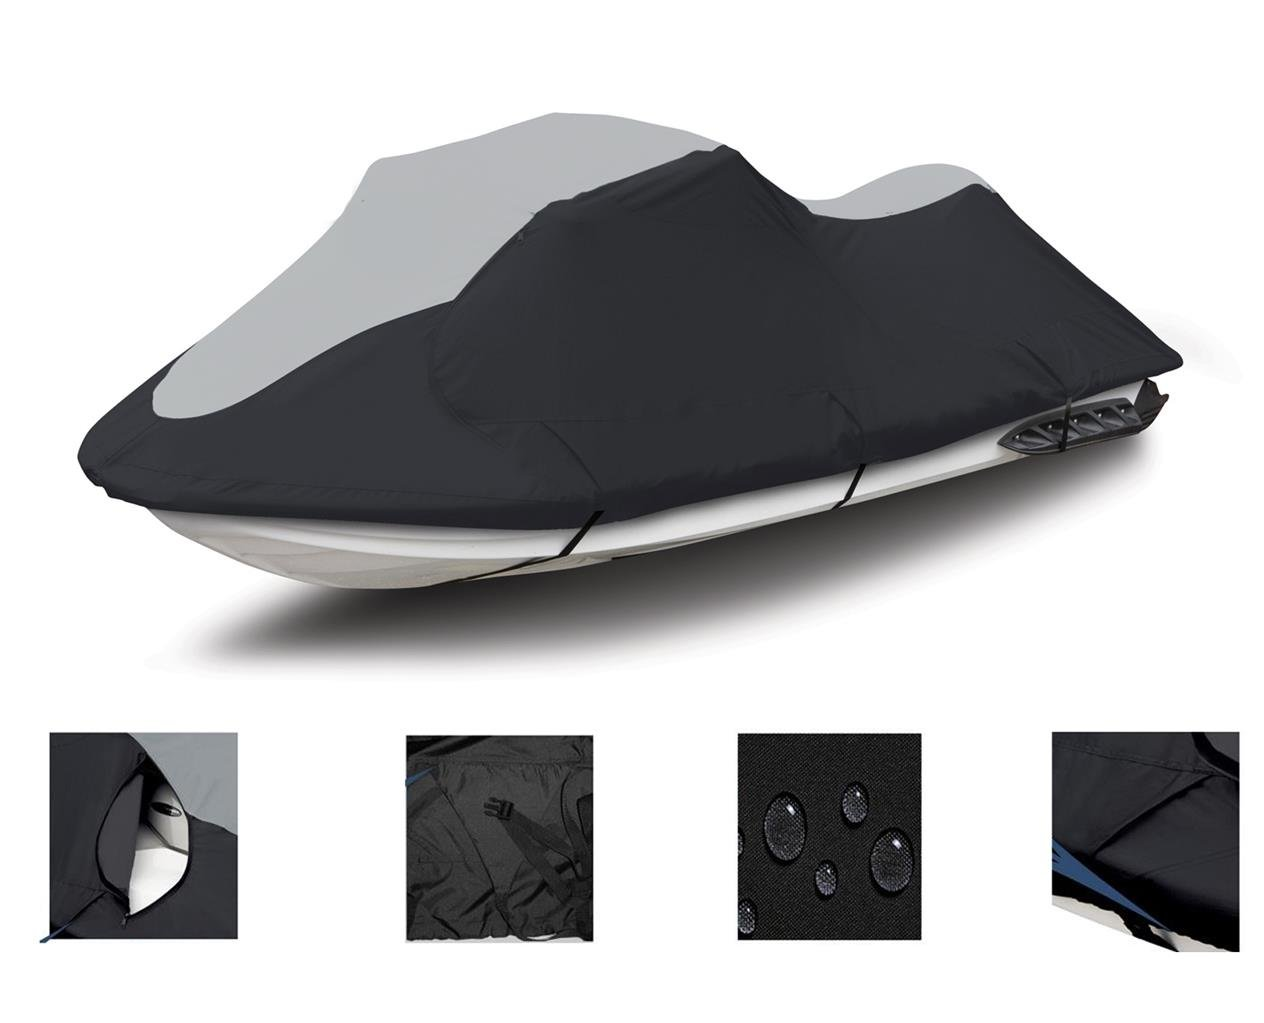 Super Heavy-Duty TOP of The LINE Jetski Cover for Yamaha Wave Venture 700 1995-1998 Jet Ski PWC Trailerable Cover Black/Grey by SBU